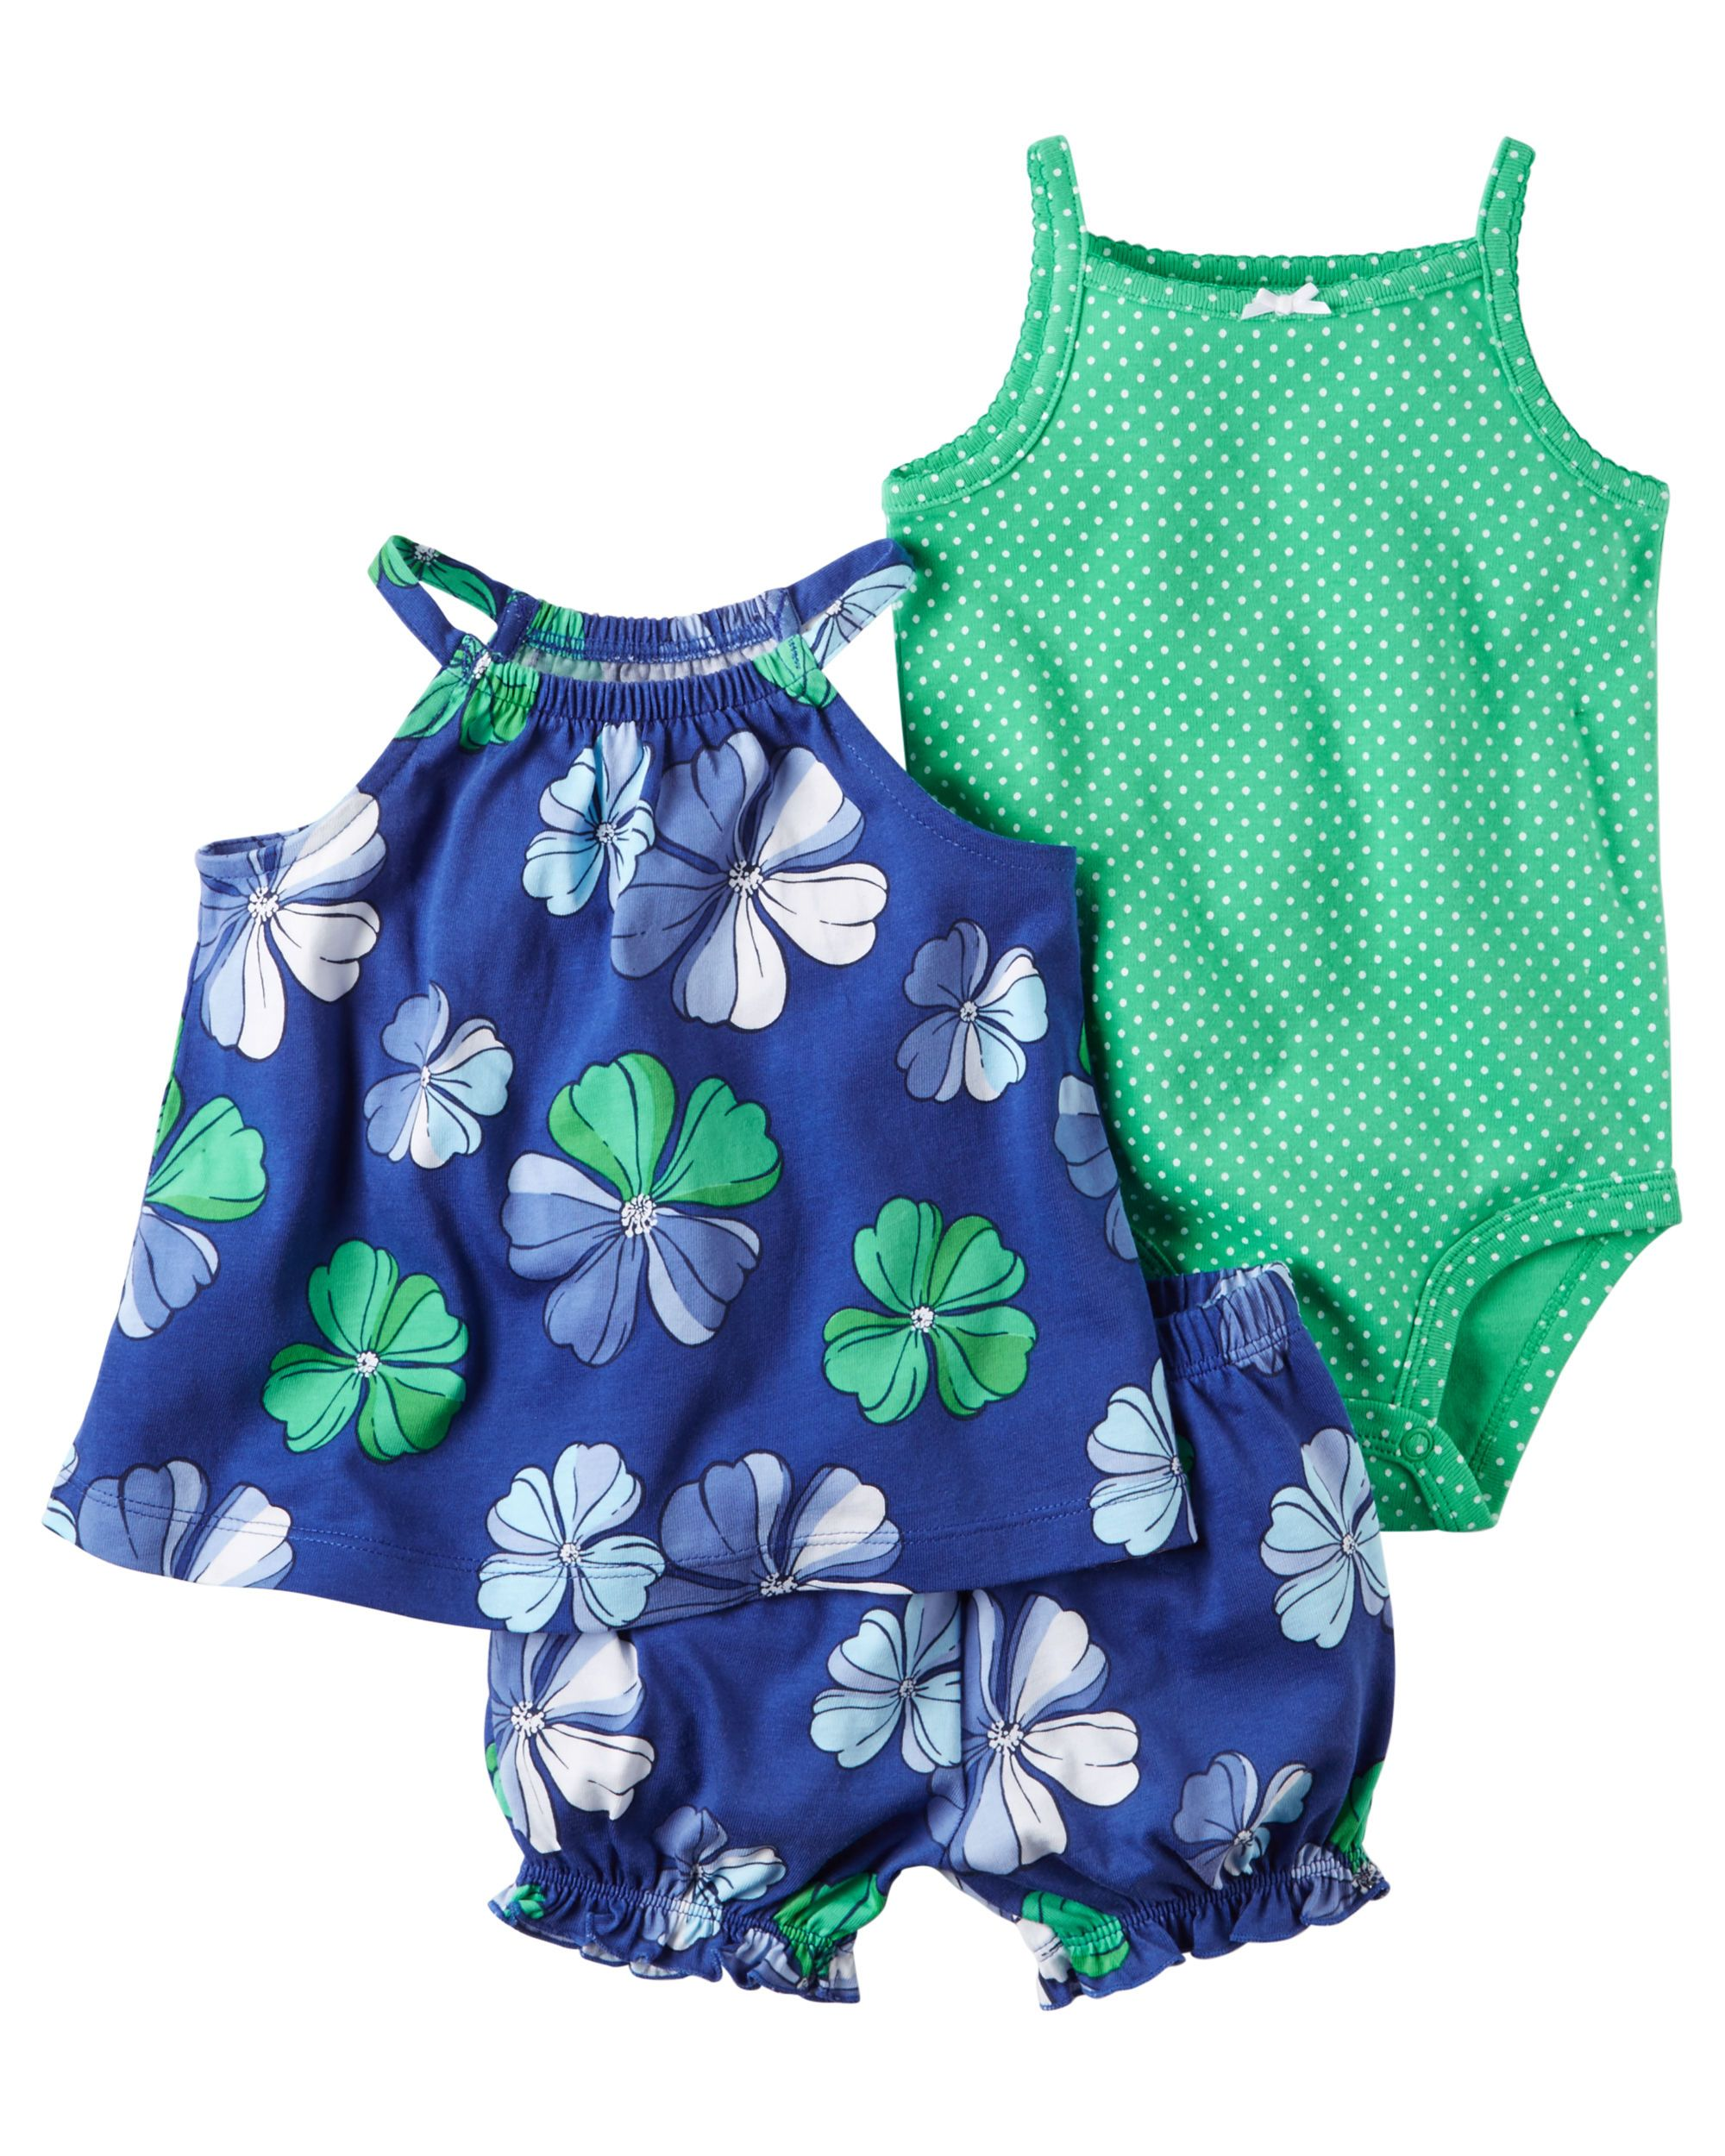 f57ab62c3182 Baby Girl 3-Piece Bubble Short Set Complete with a breezy top